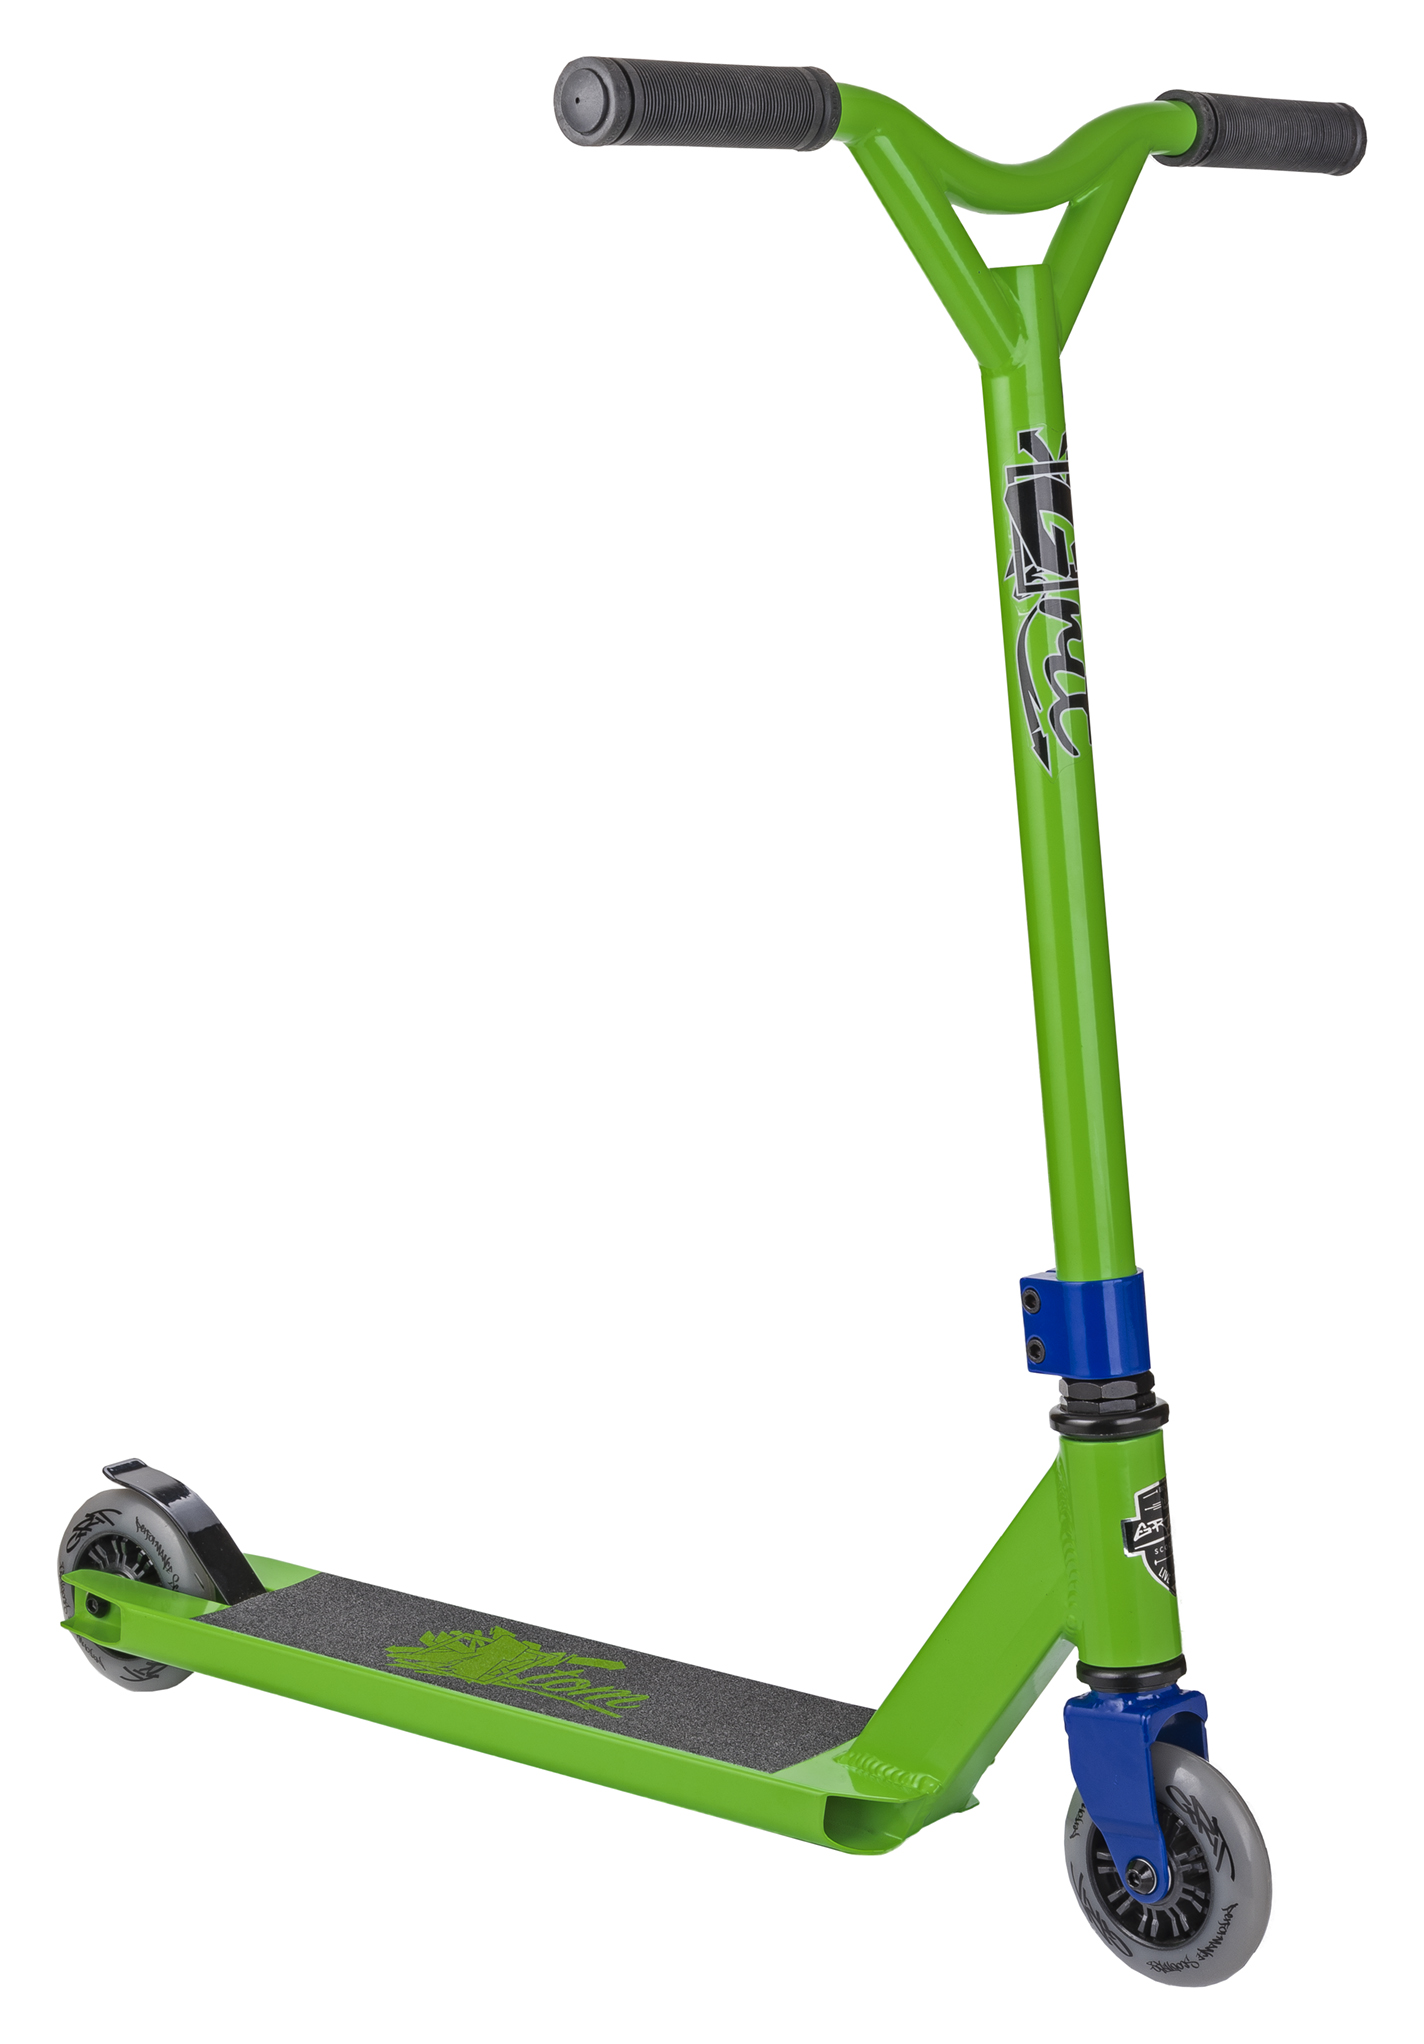 Grit Atom Pro Scooter (Blue Black) by Grit Scooters